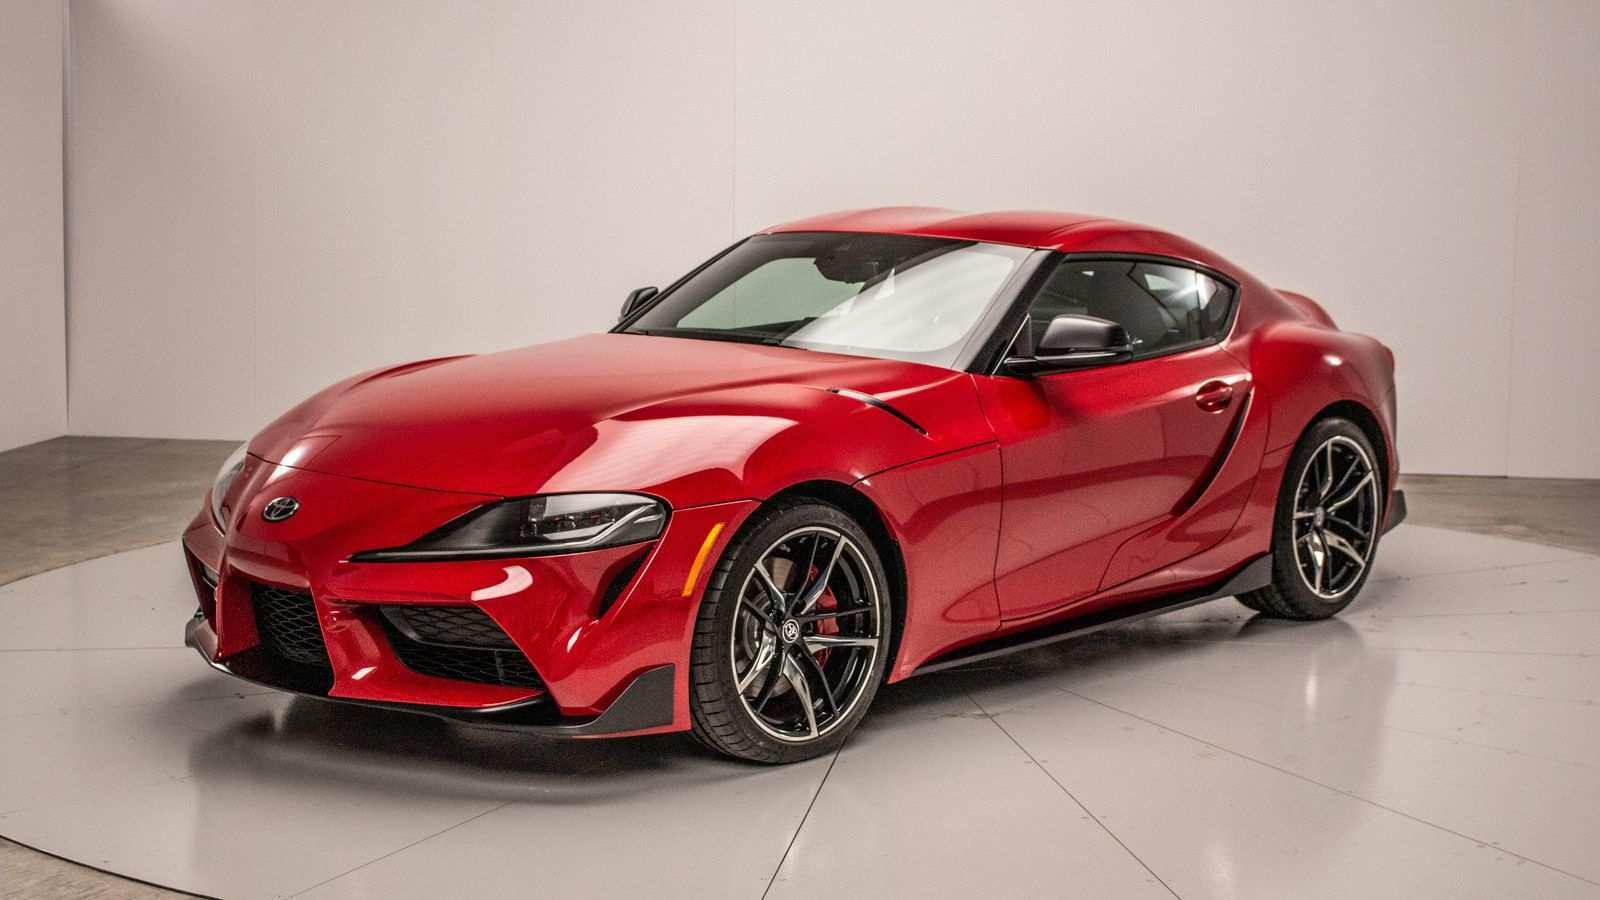 78 The Best Toyota Supra 2020 Price Usa Research New